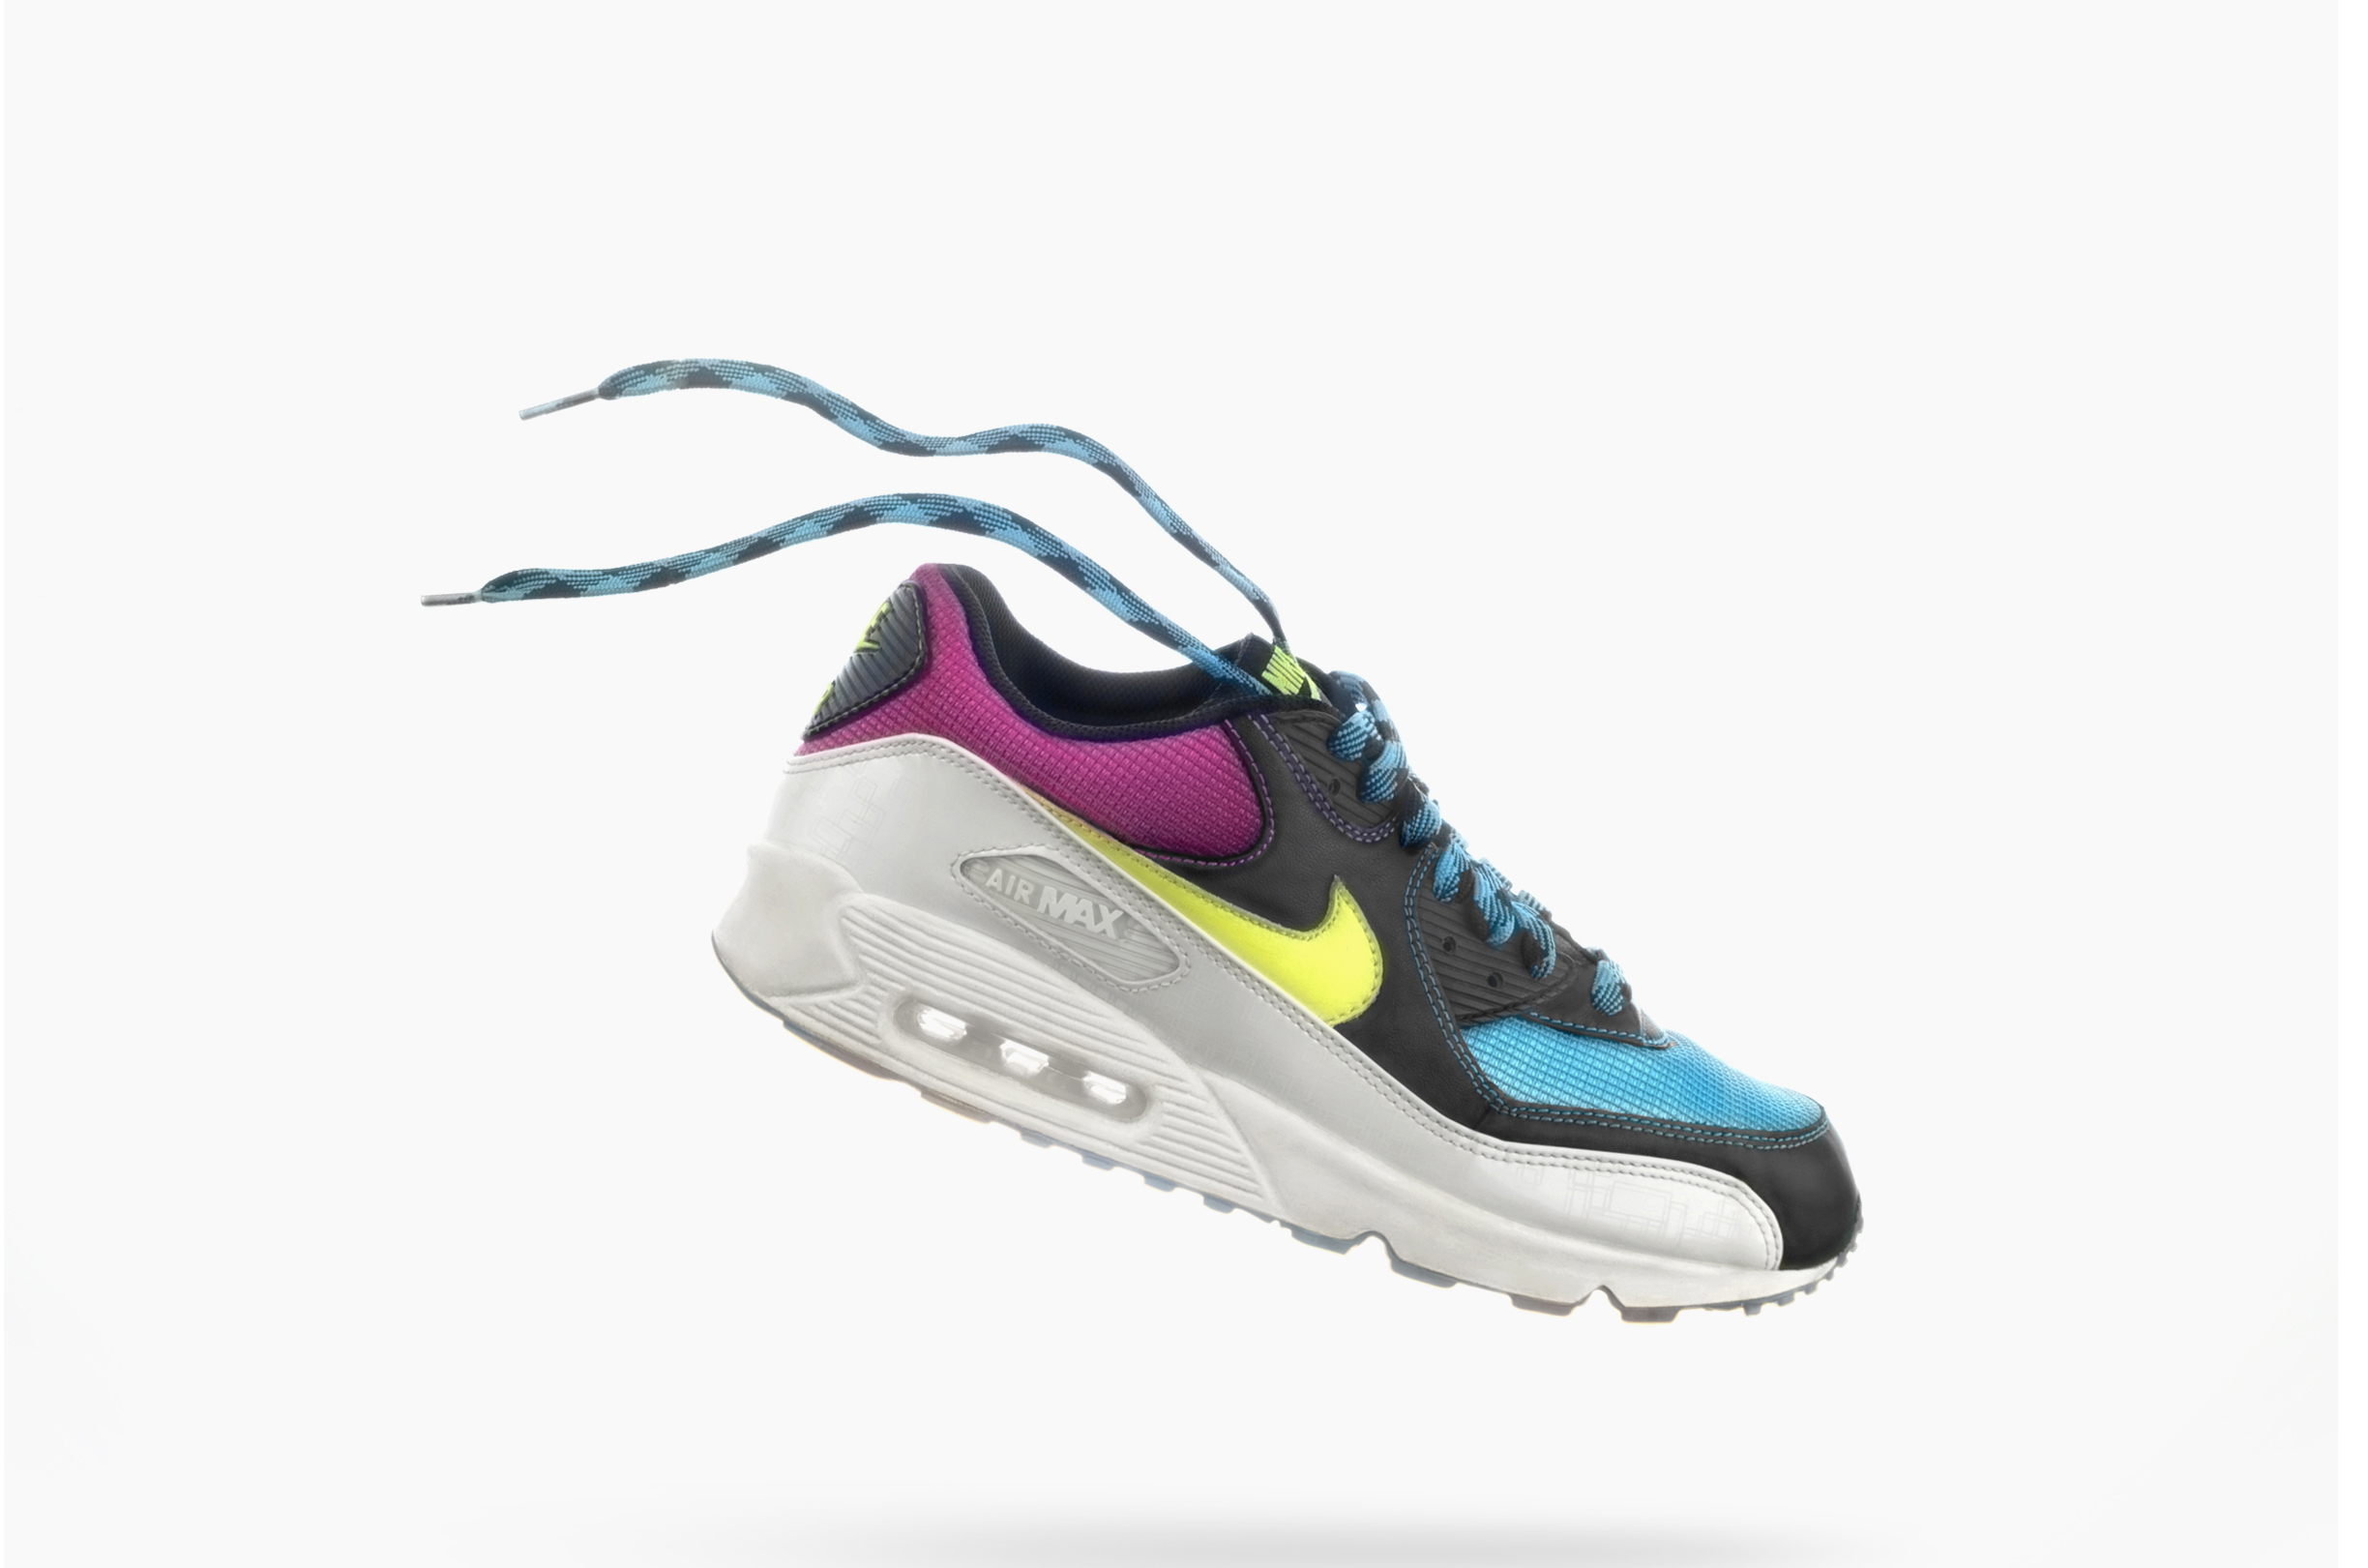 Nike-AIR_MAX_90_NEON_RETOUCH_AFTER.jpg